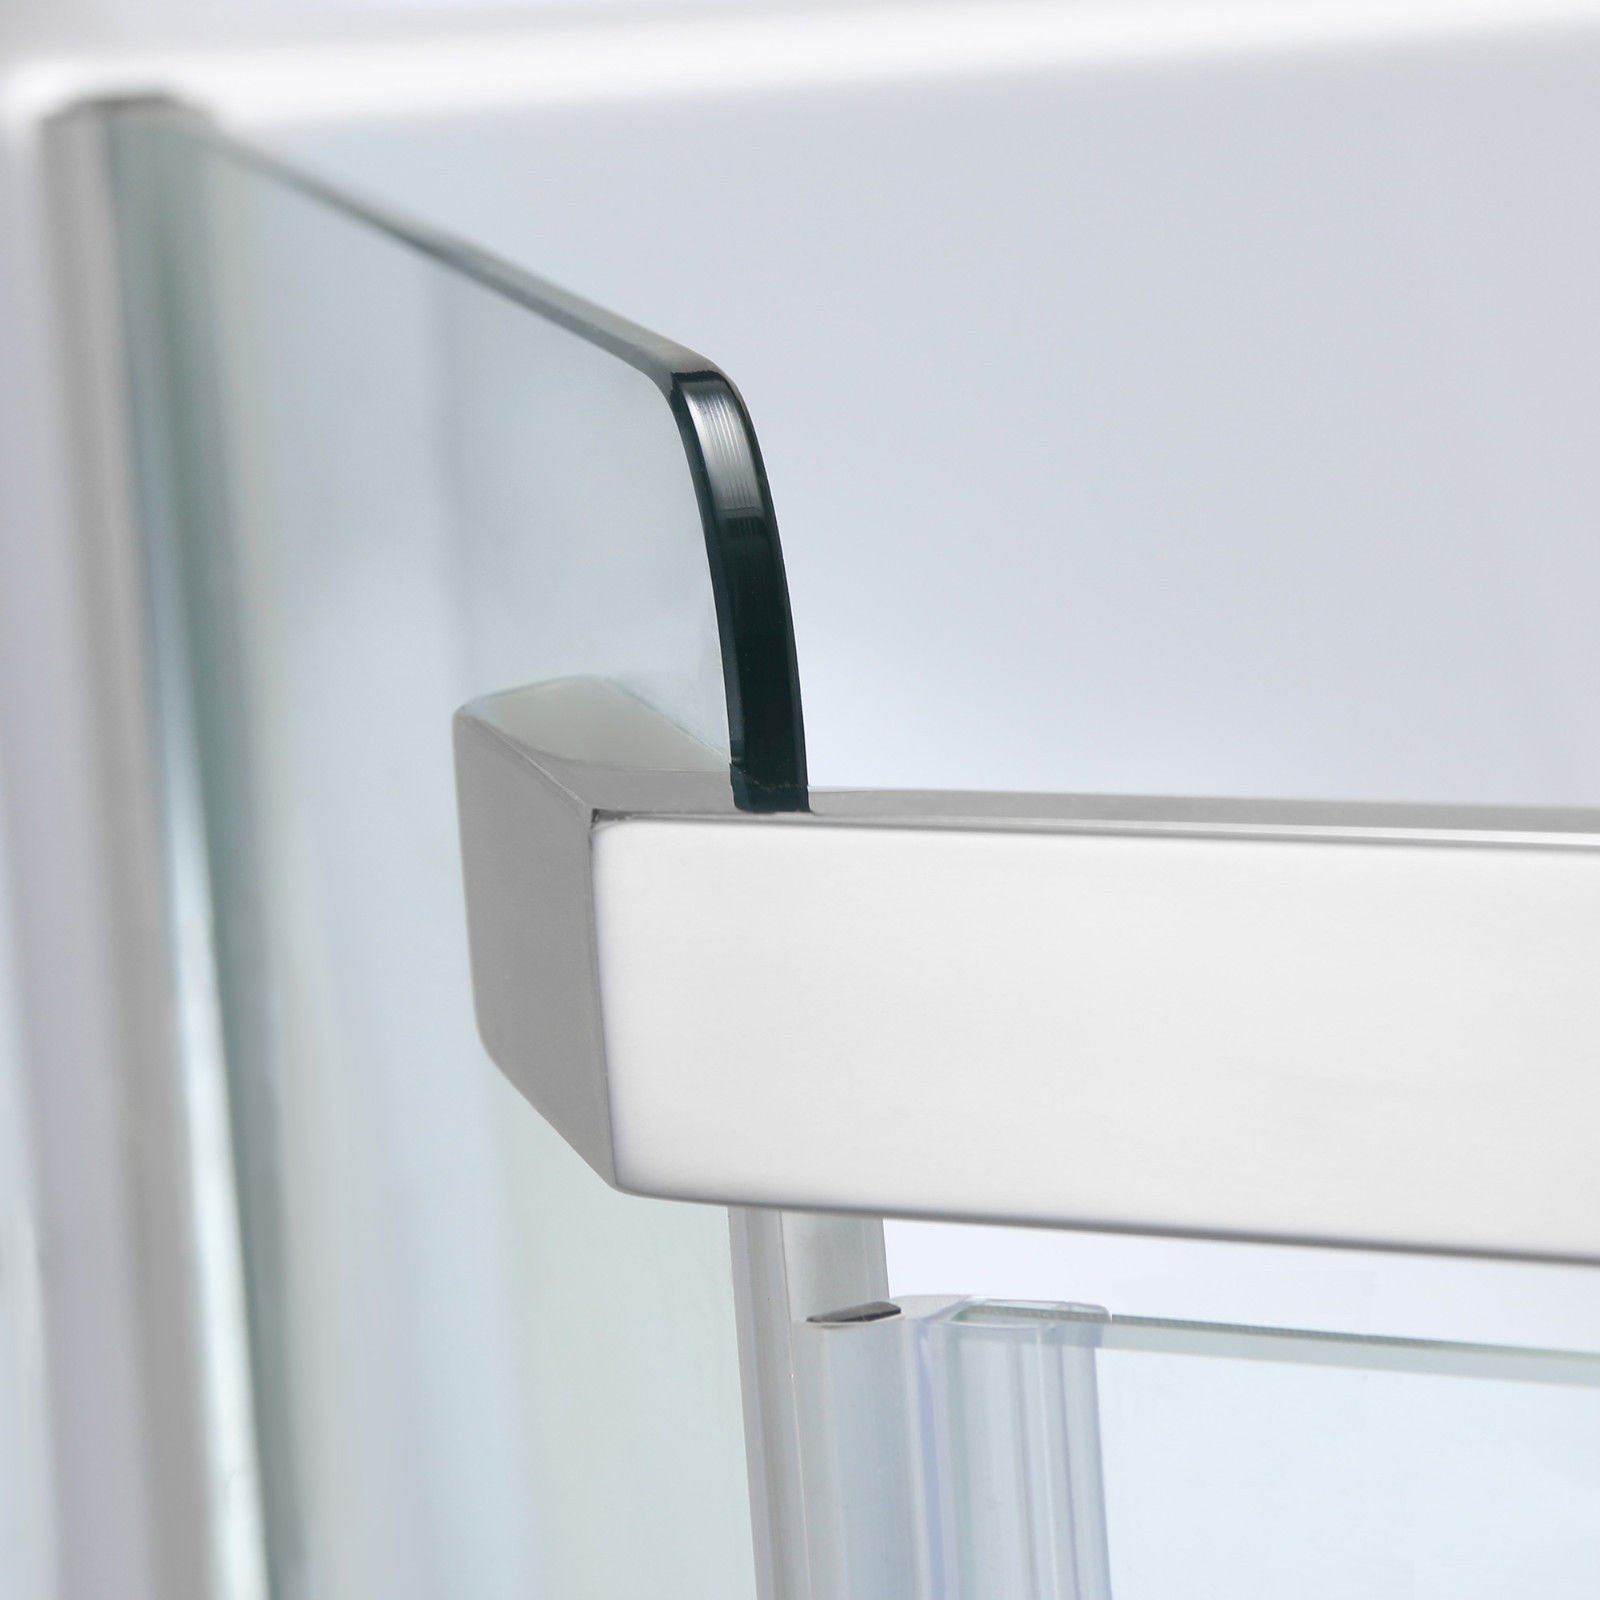 SUNNY SHOWER A33, Semi-frameless Neo-Angle Corner Shower Doors, Fit to 36 3/5'' W x 36 3/5'' D x 71 4/5'' H, 1/4'' Clear Glass, Chrome Finish- Back-wall & Shower Base Sold Separately by SUNNY SHOWER (Image #2)